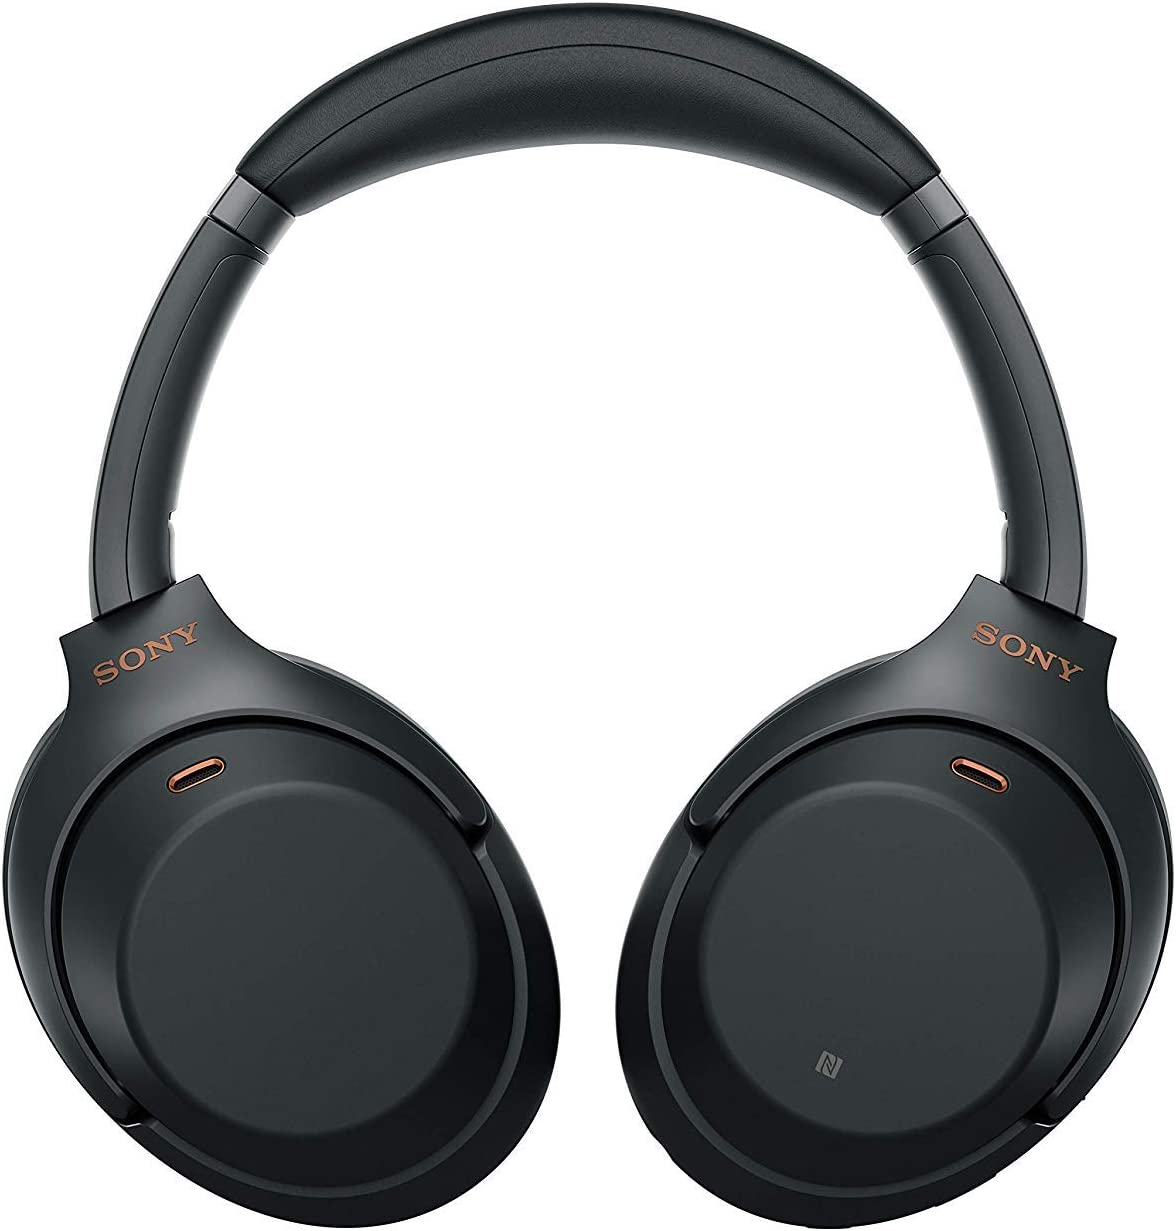 Sony WH-1000XM3 Wireless Noise-Canceling Over-Ear Headphones (Black)